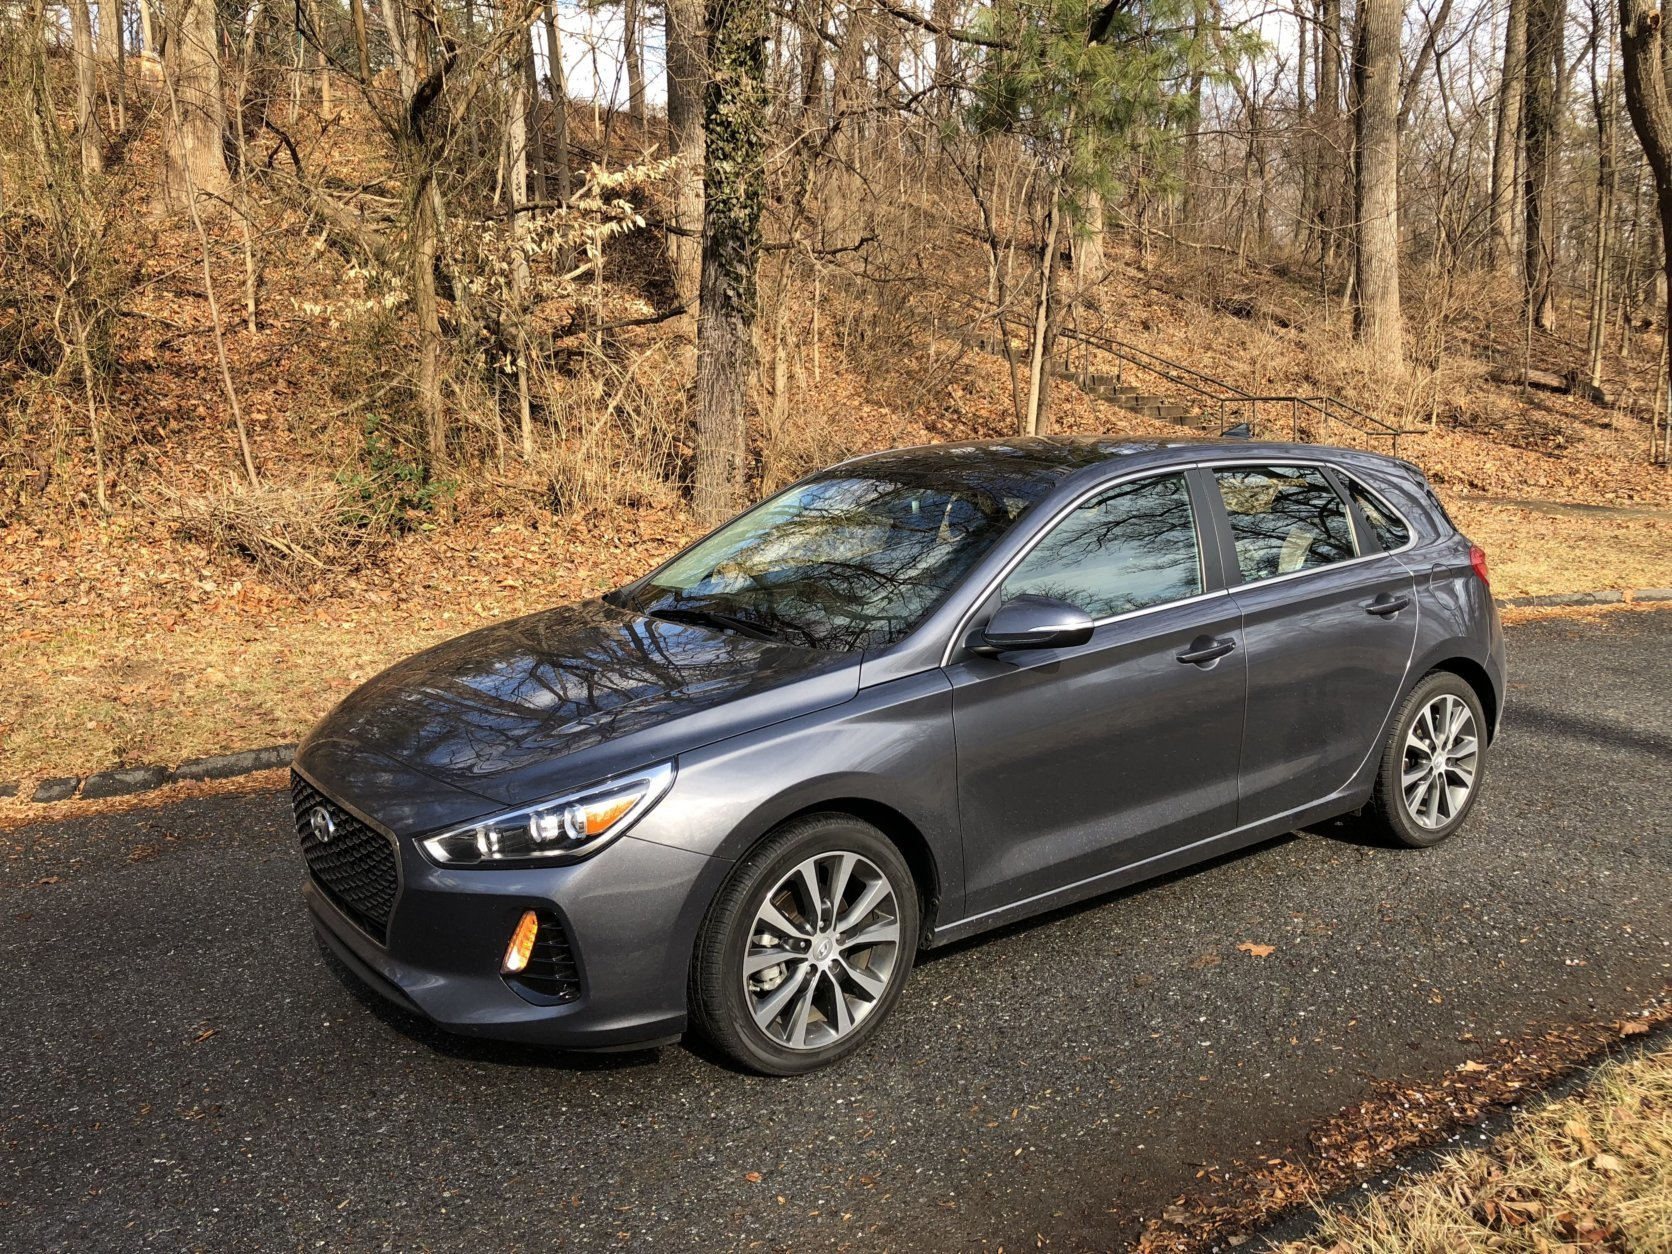 Five-door hatchback compacts seem to be making a comeback as an alternative to the compact sedan or the even more popular crossover. (WTOP/Mike Parris)